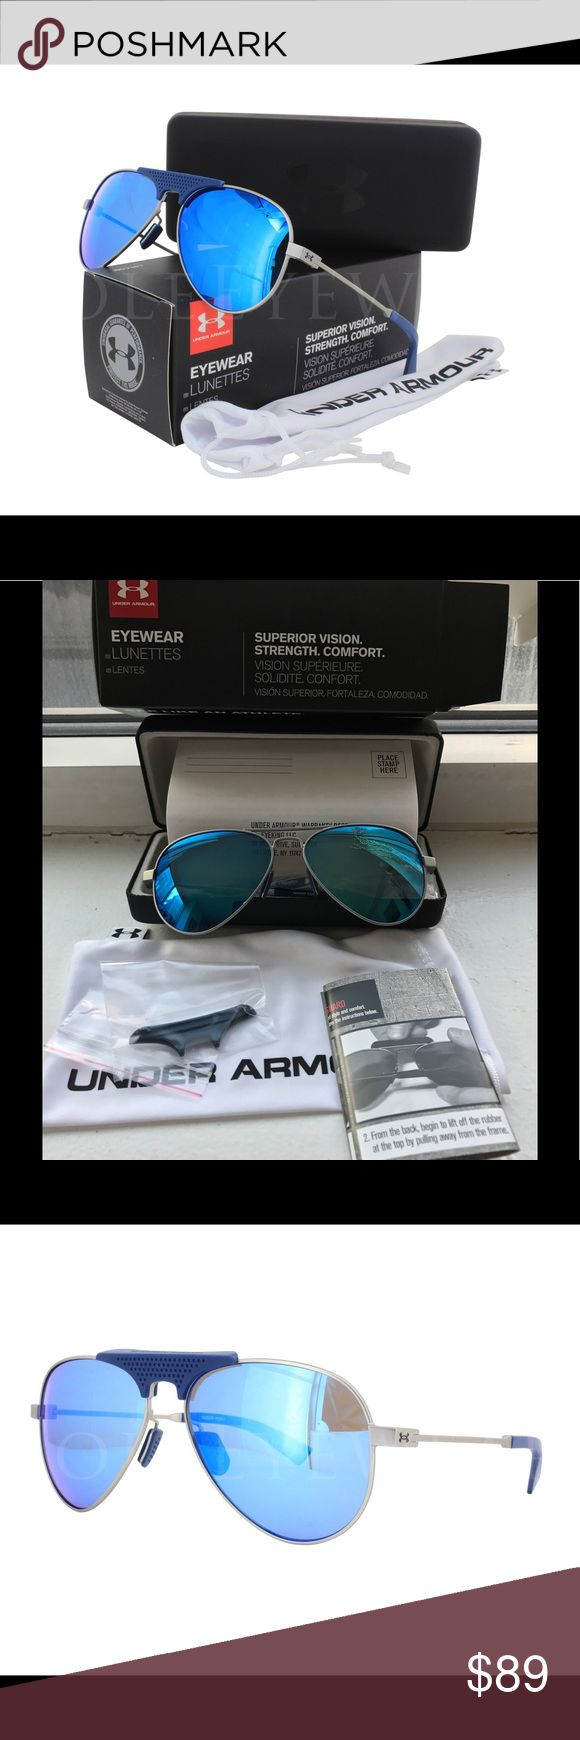 Under Armour Getaway Sunglasses An all-around excellent set of shades.  Made with lenses that shield eyes from UVA, UVB and UVC rays, these aviator sunglasses protect eyes when you need it most. Their adjustable nose and removable brow blade provide a custom fit. Experience comfort, clarity of vision, and protection with the Getaway Sunglasses.  FEATURES: Performance sunglasses Protects eyes from 100 percent of the sun's harmful UVA, UVB and UVC rays  Fit: Medium - Large Lens: 58mm Nose…